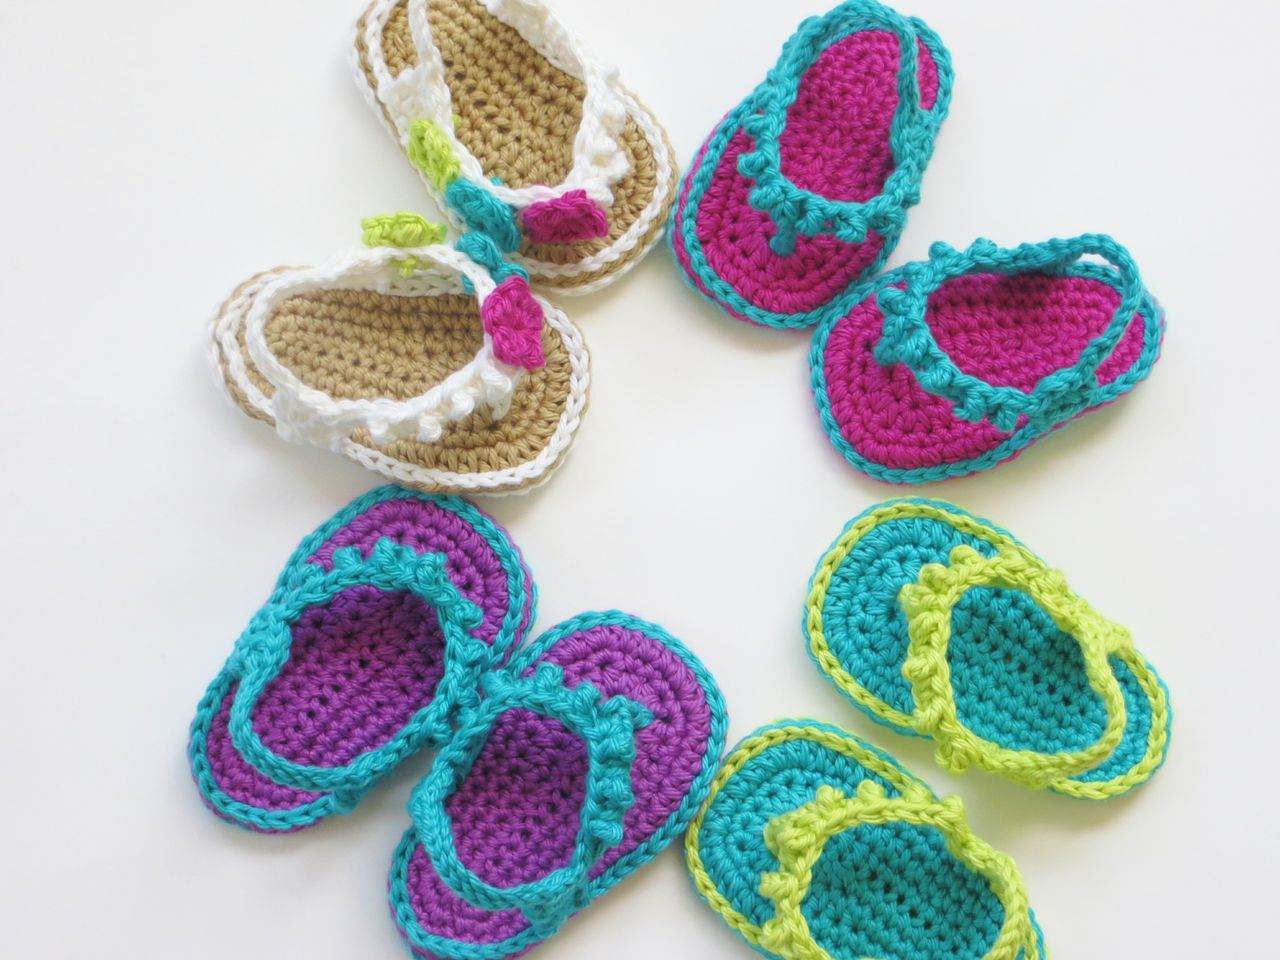 Crochet Patterns Using Flip Flops : Flip Flops for Baby Girls Crochet Pattern - Knitting ...